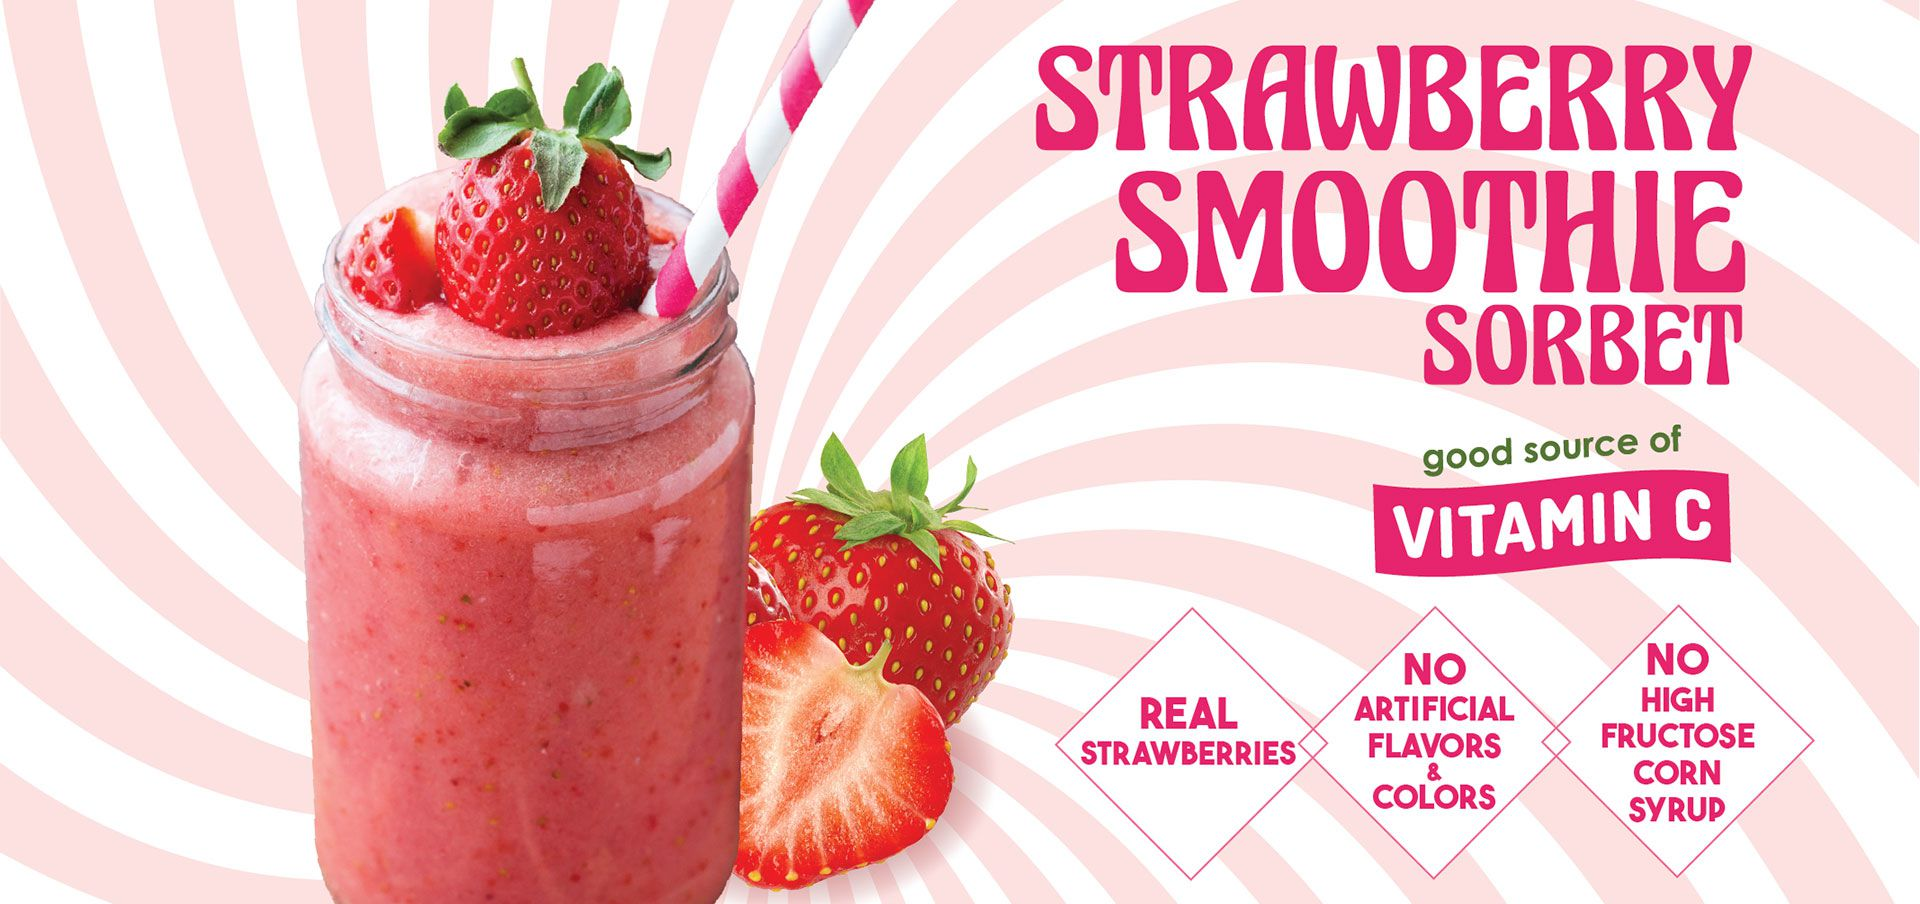 strawberry smoothie sorbet label image